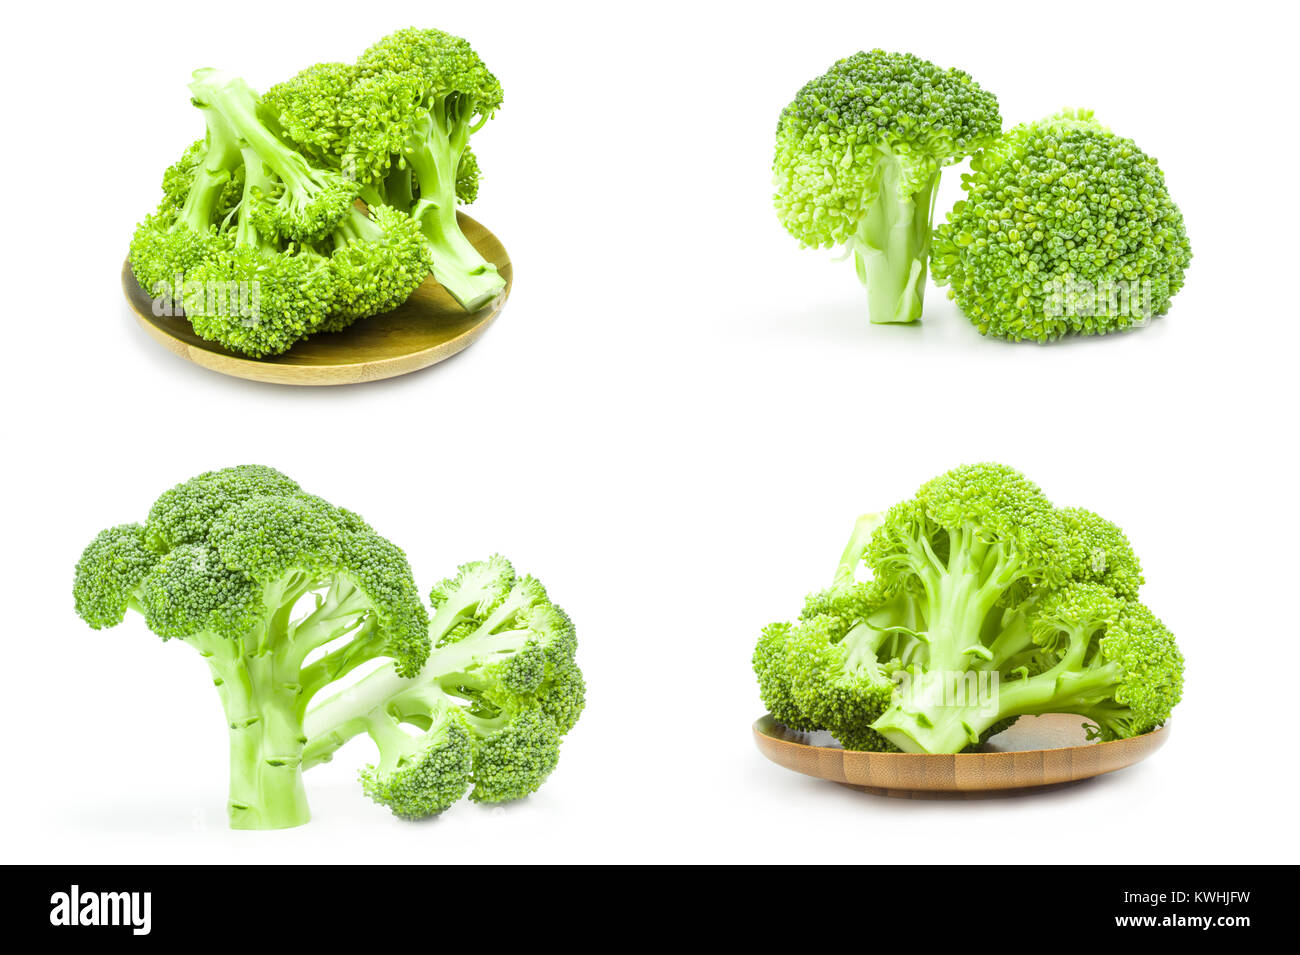 Set of fresh green broccoli isolated over a white background Stock Photo